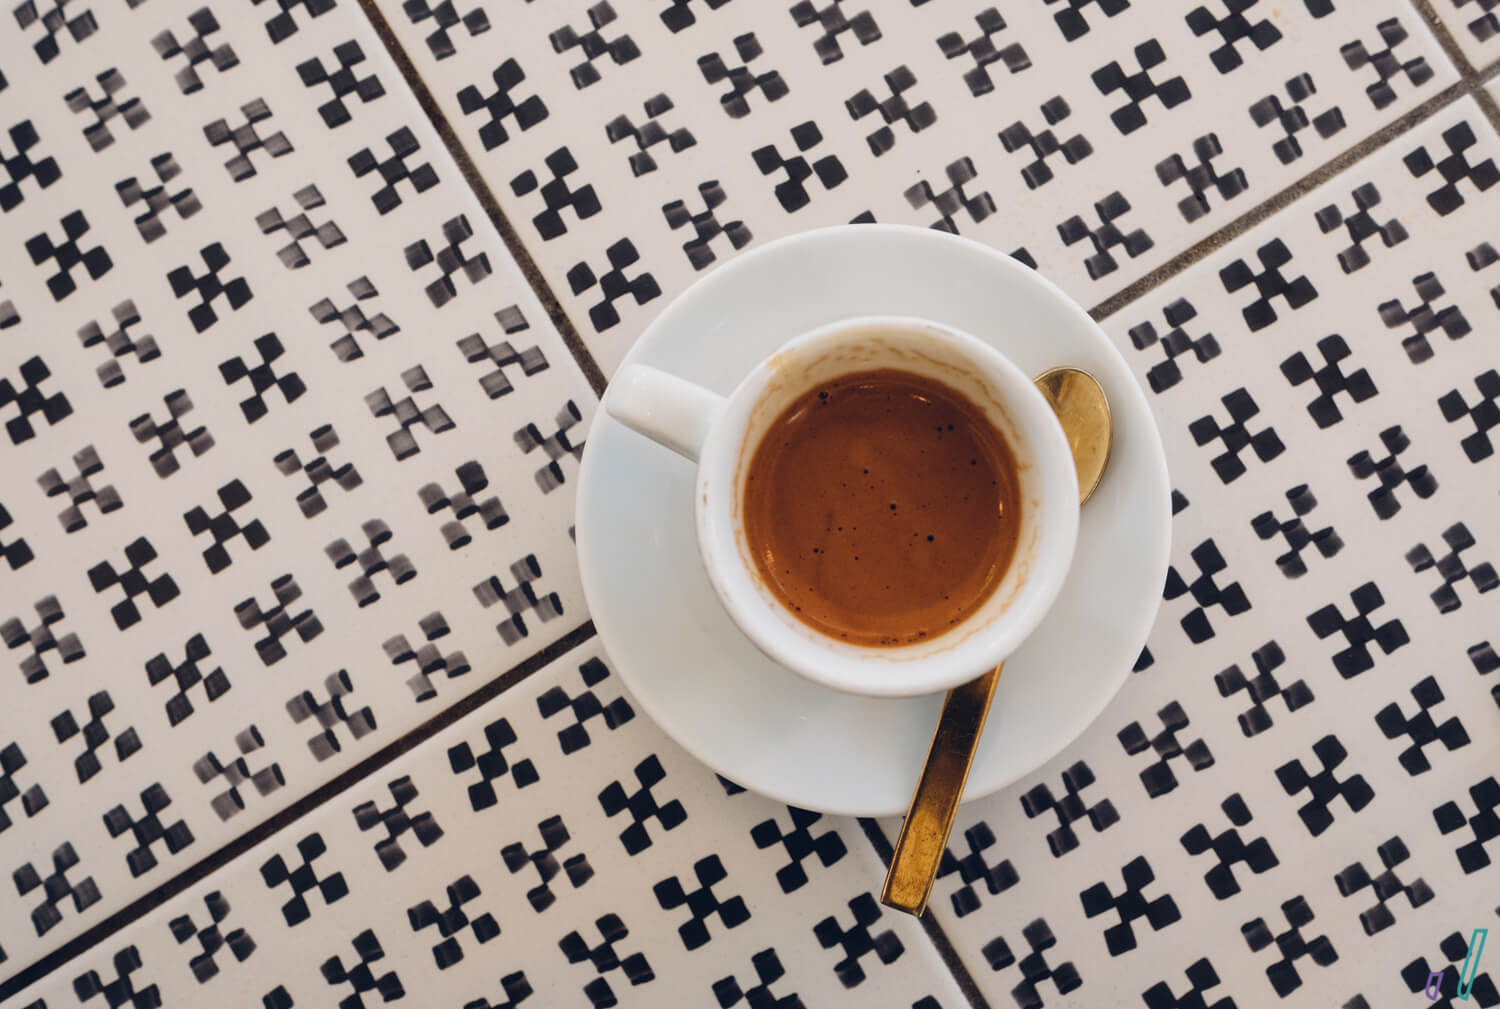 top-down look at espresso against tiled countertop